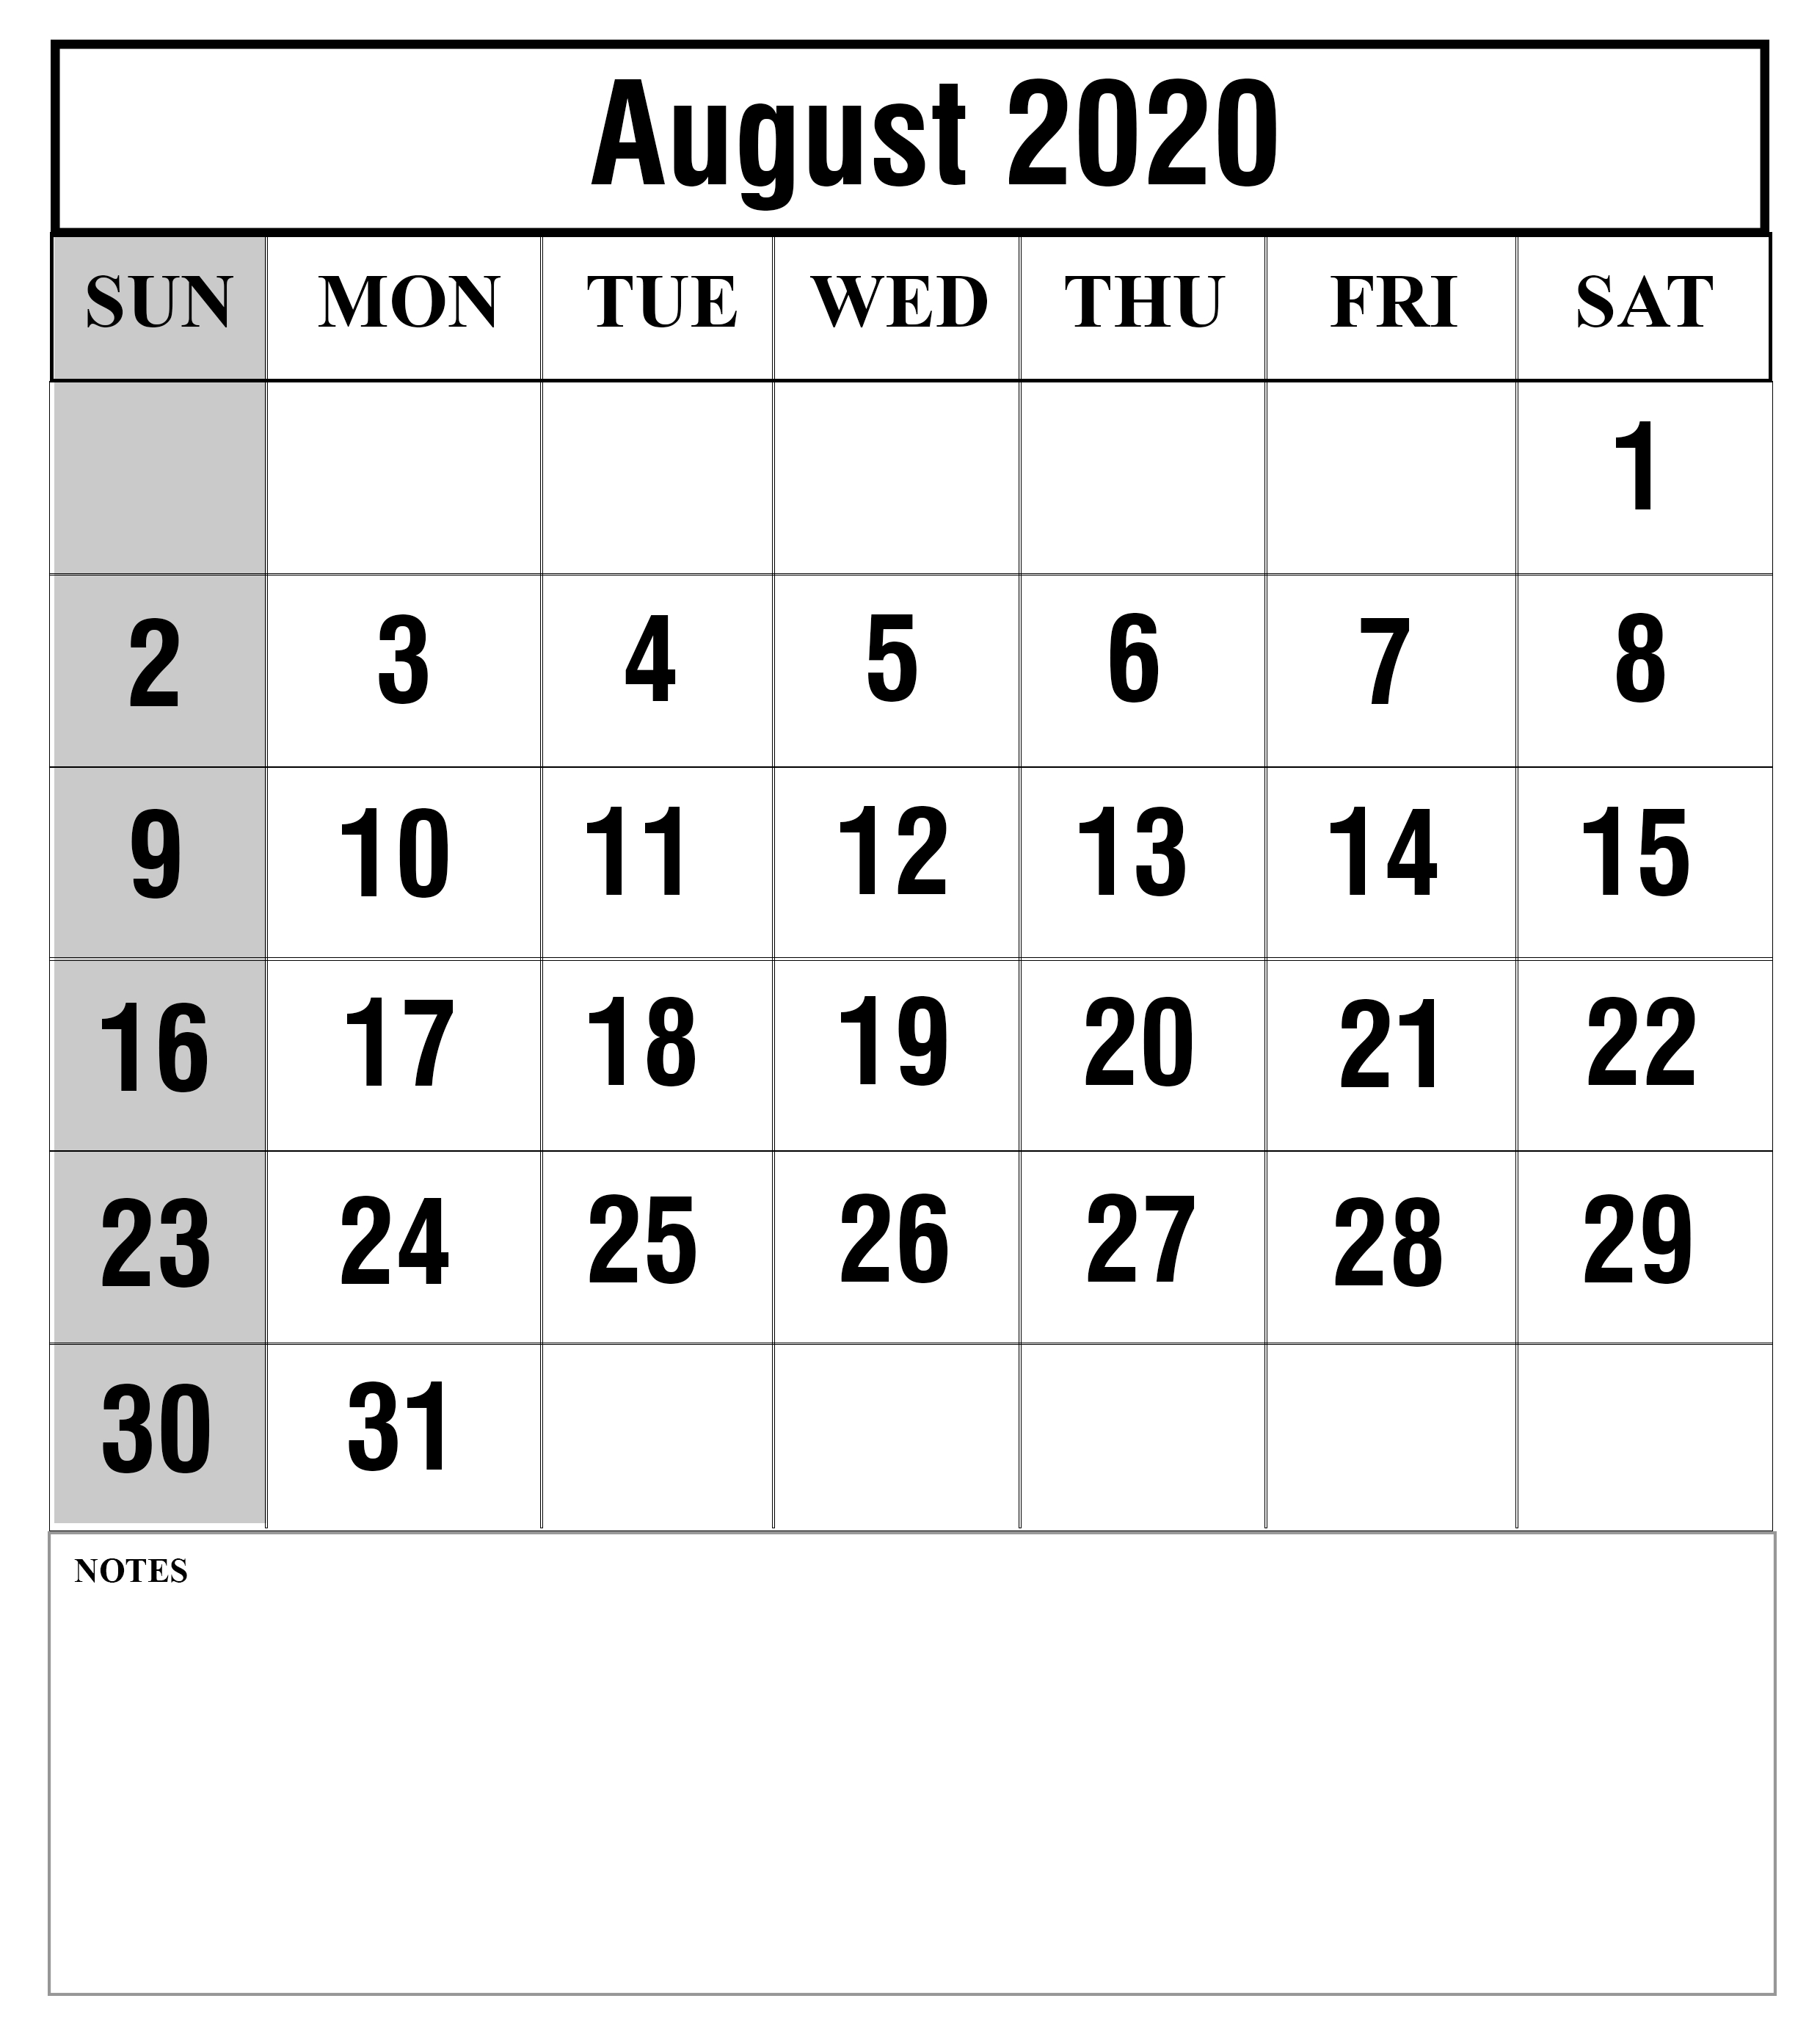 Free August 2020 Calendar Printable Template With Holidays